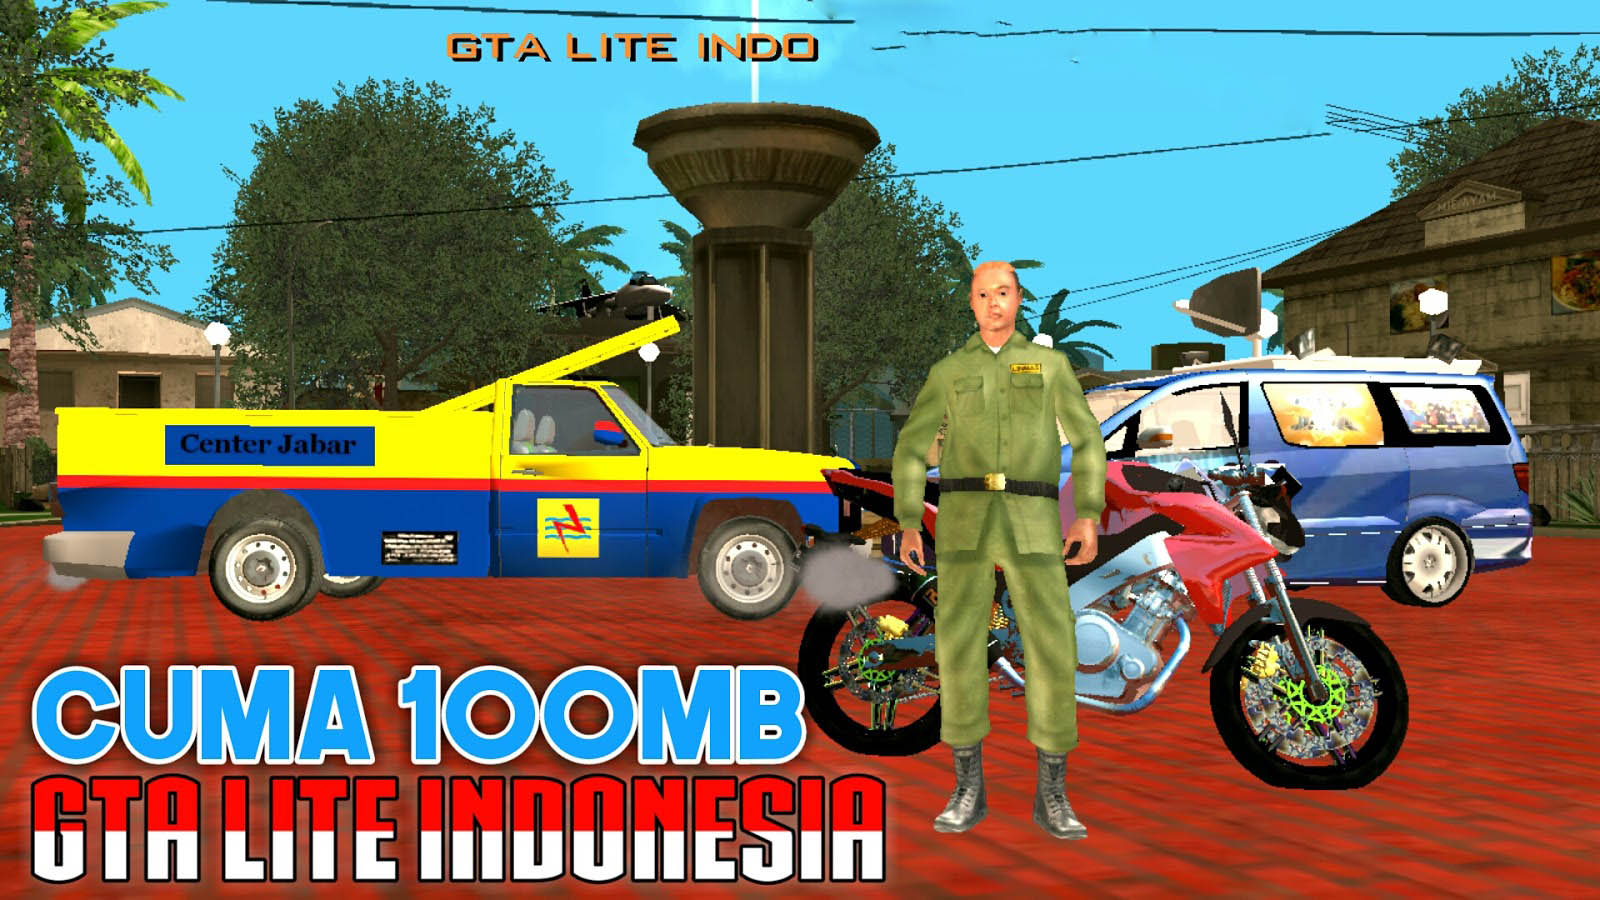 download gta sa lite adreno mod 200mb